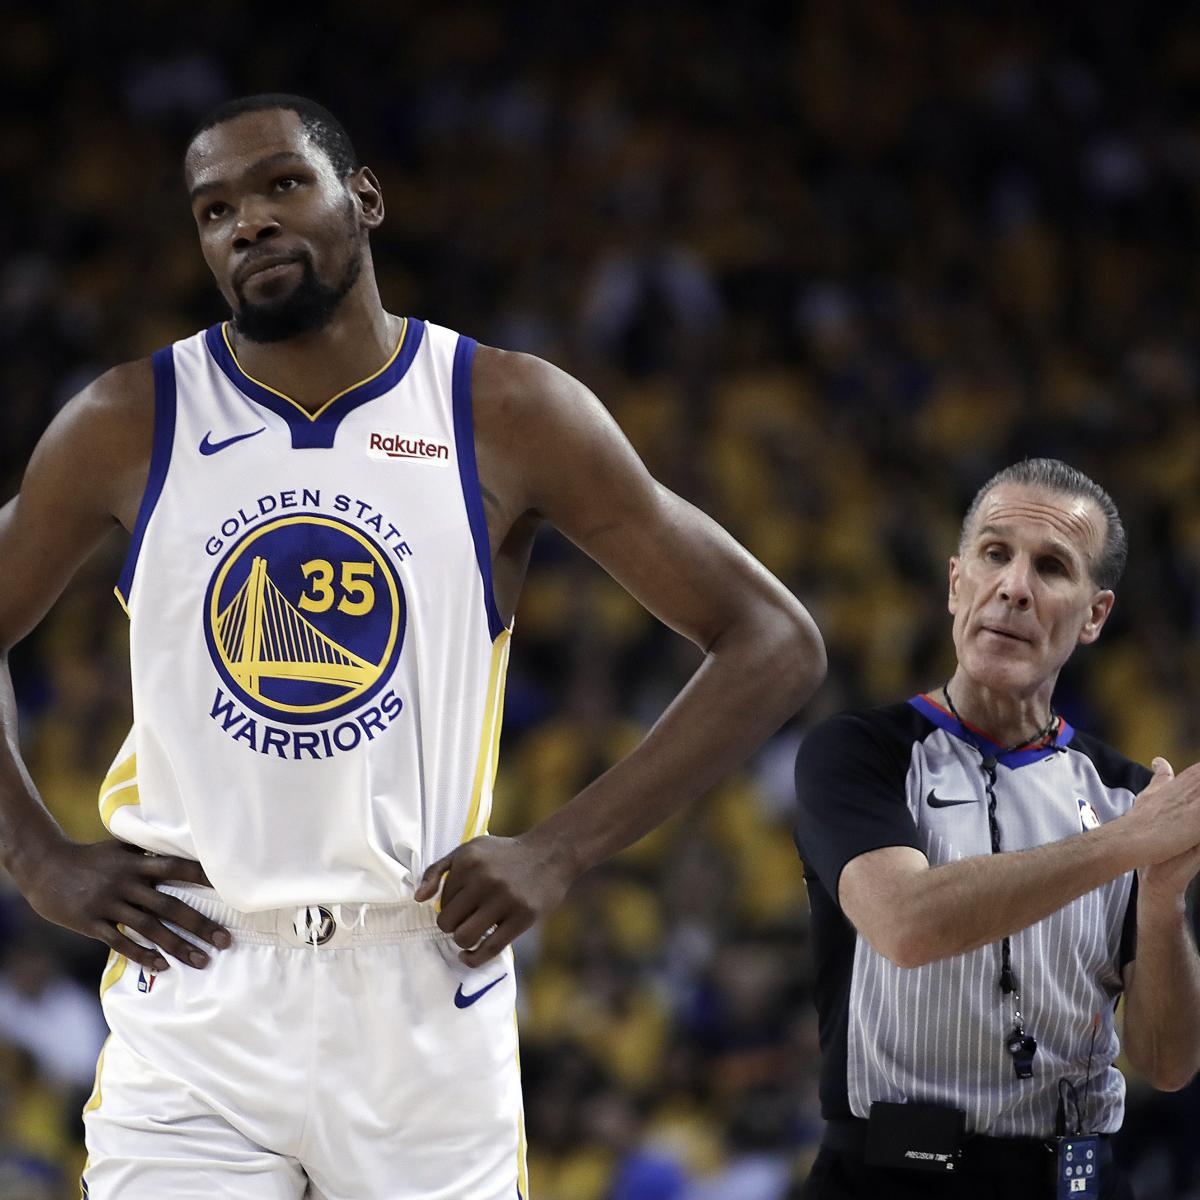 """Golden State Warriors coach Steve Kerr said the team expects Kevin Durant to return if it advances to the Western Conference Finals. """"I think it's good news."""